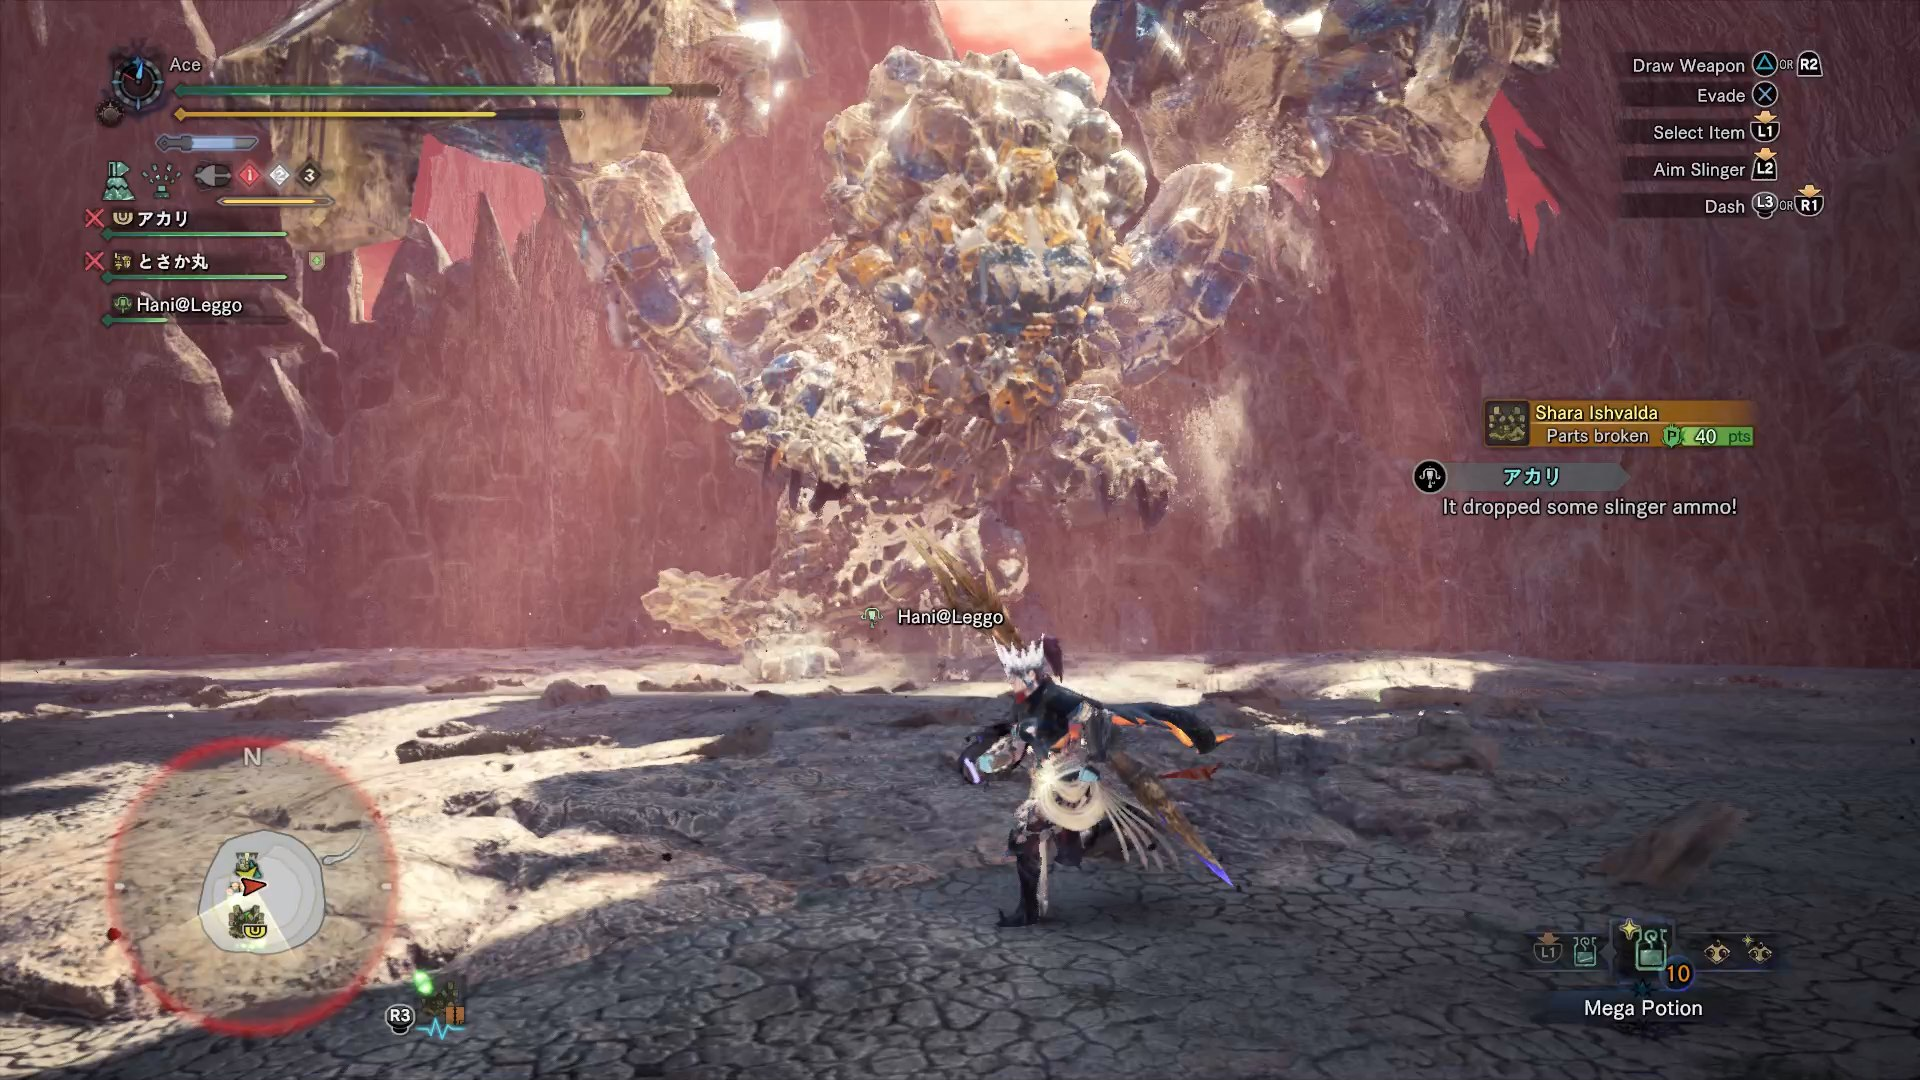 Monster Hunter World Iceborne S Final Boss Makes For A Brilliant And Terrifying Finale Usgamer Submissions must directly relate to mhw. monster hunter world iceborne s final